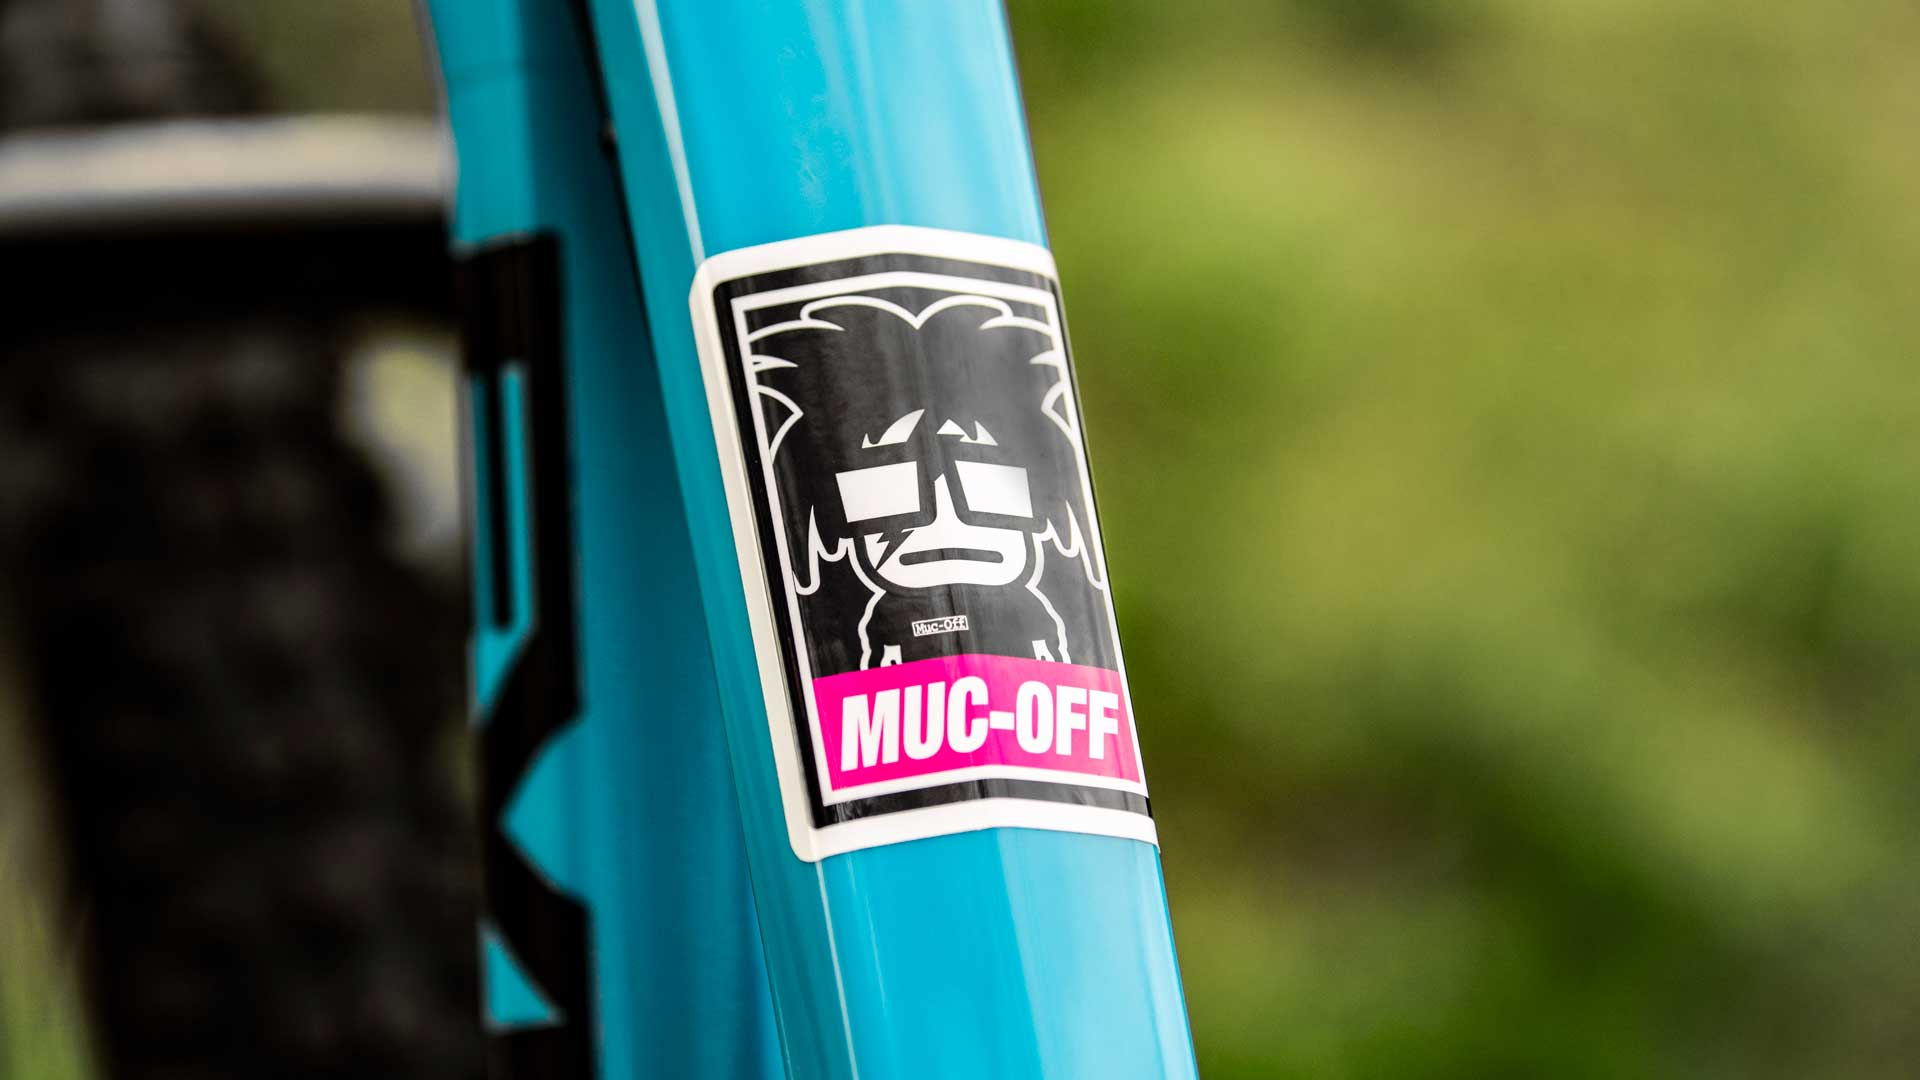 Cartoon Muc-off branded stickers on bike frame